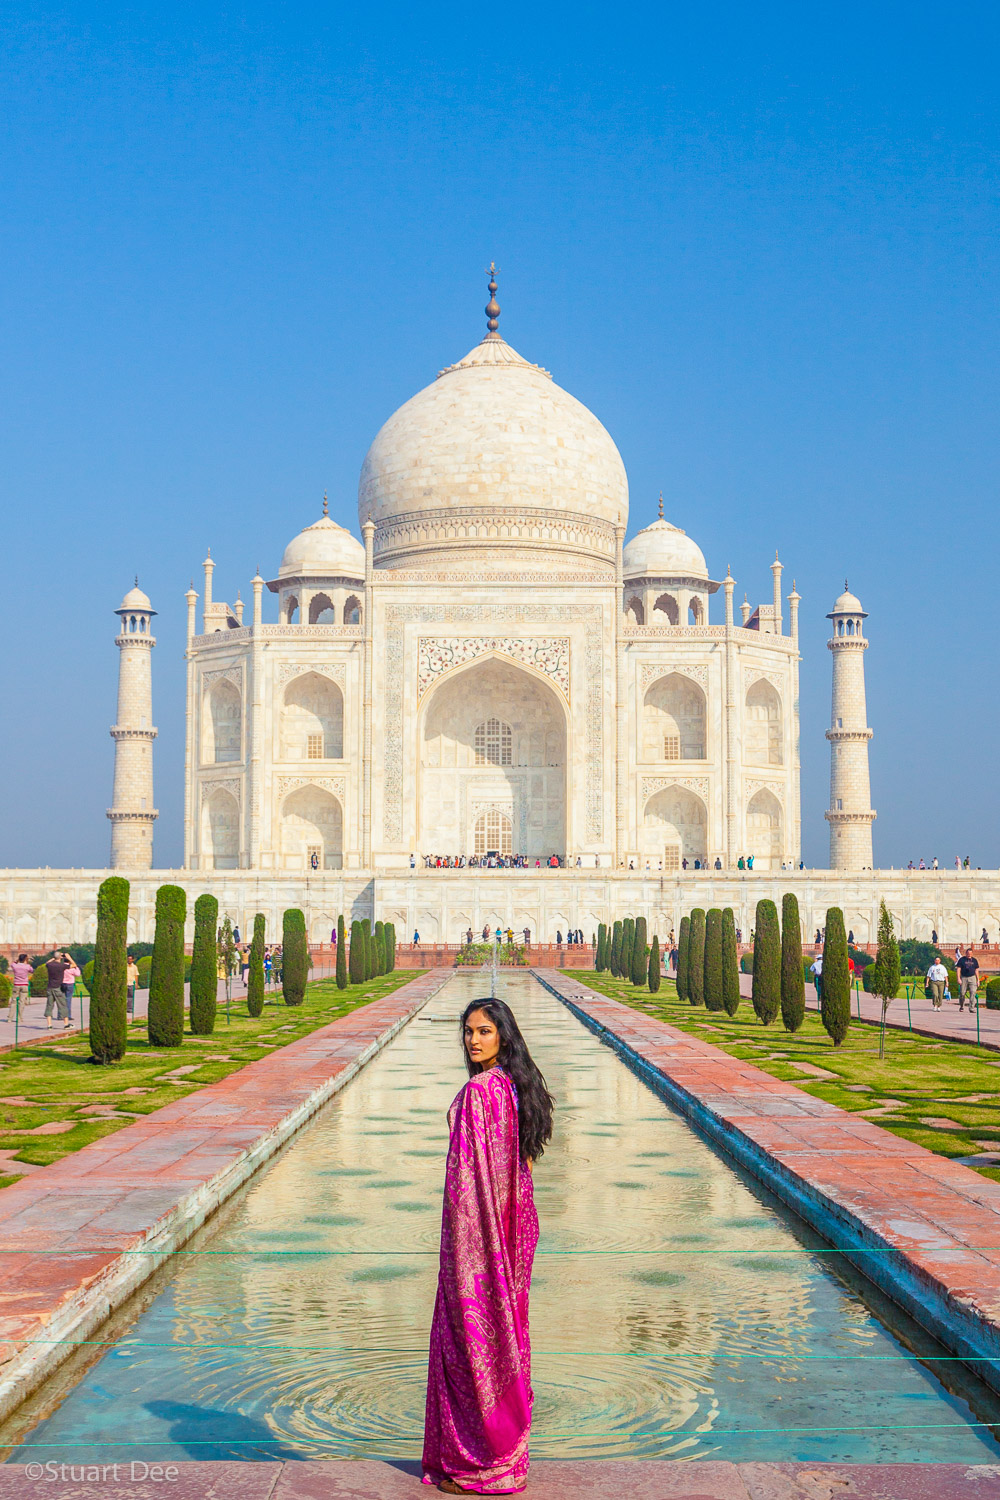 Taj Mahal, Agra, Uttar Pradesh, India. The Taj Mahal is the most recognized symbol of India.